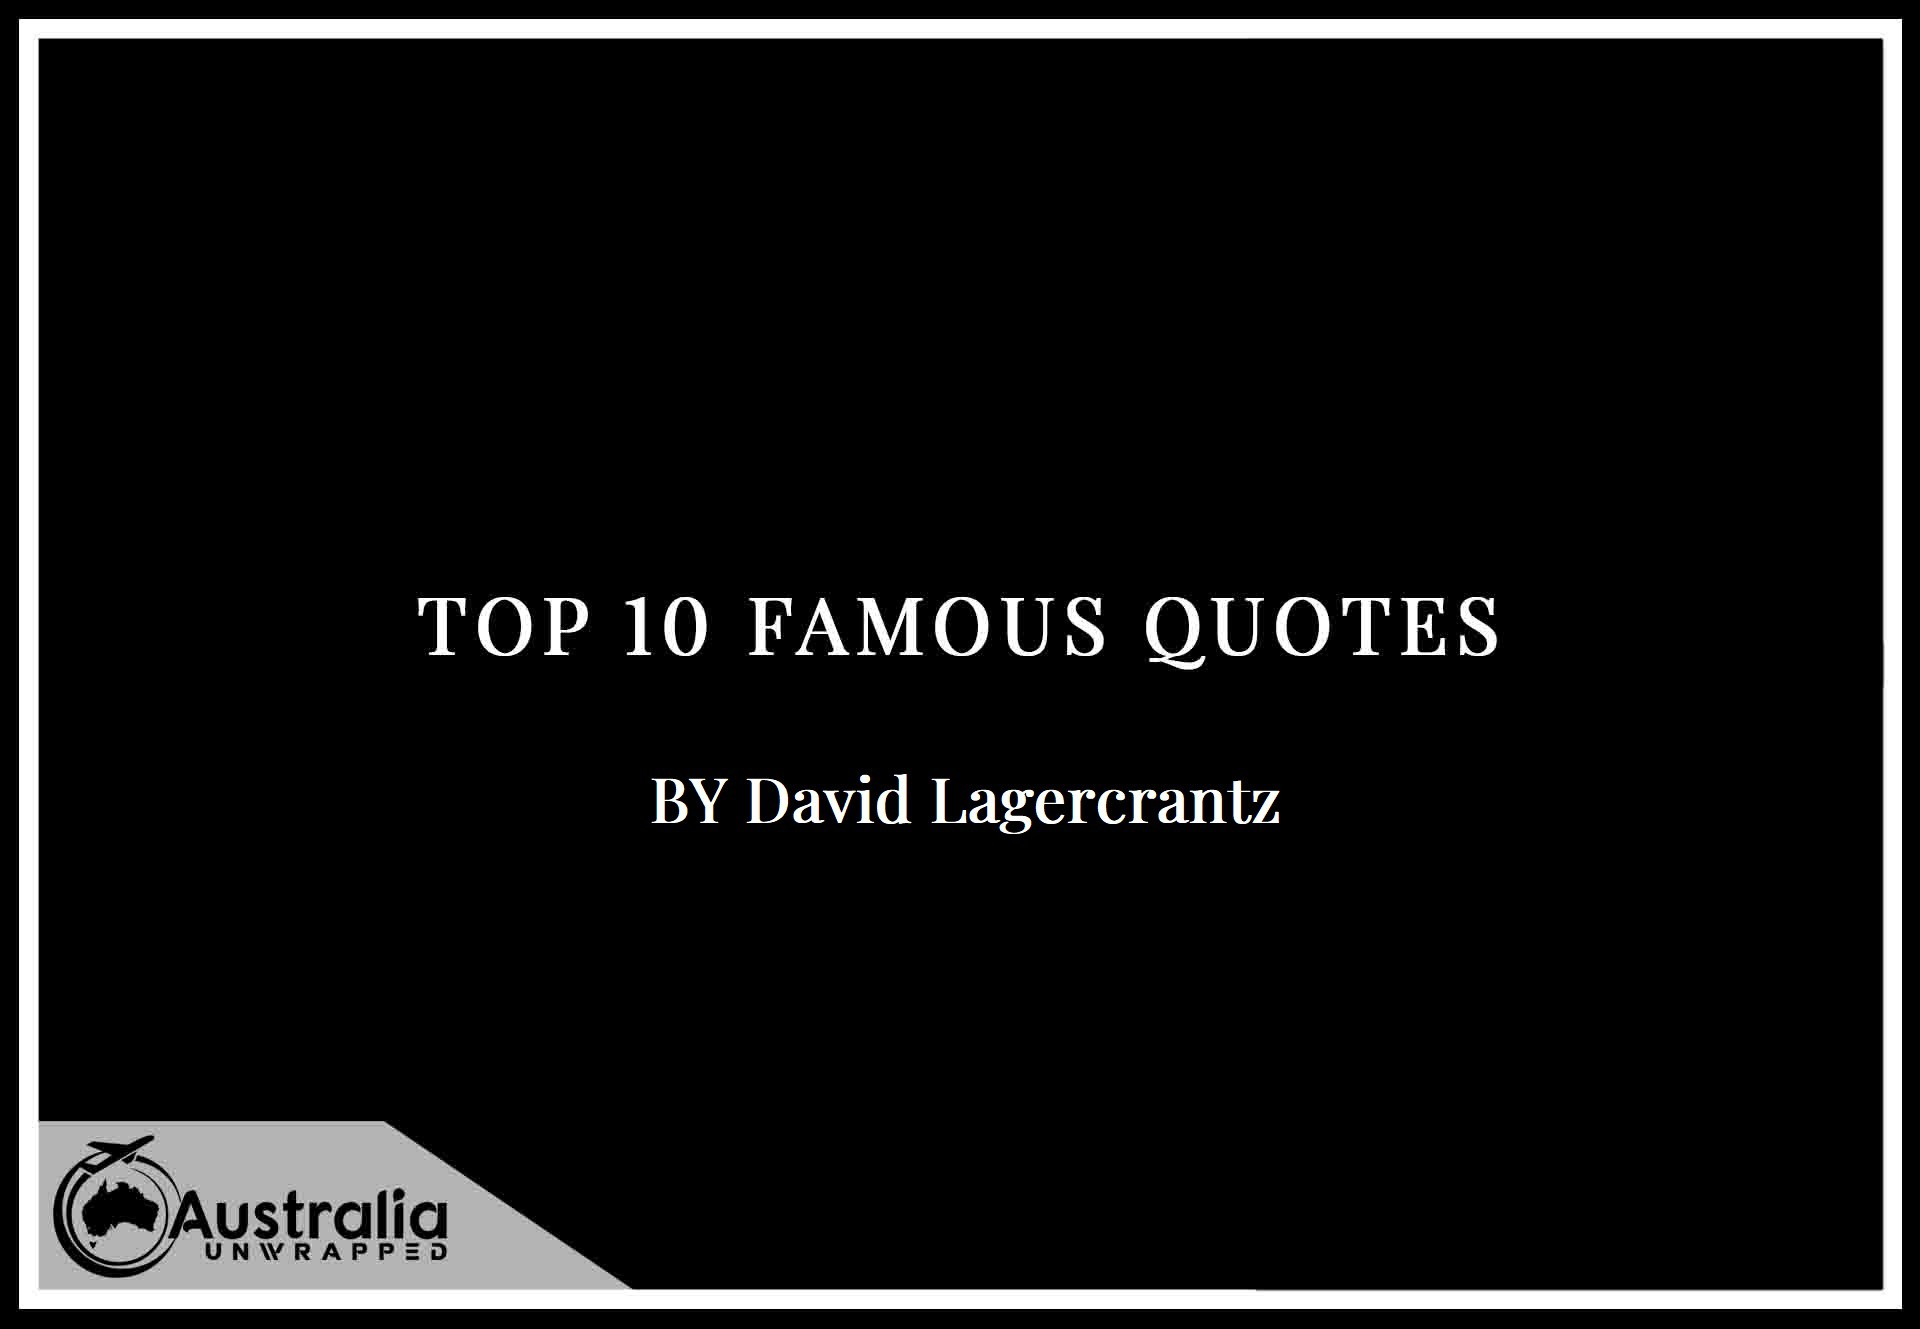 Top 10 Famous Quotes by Author David Lagercrantz